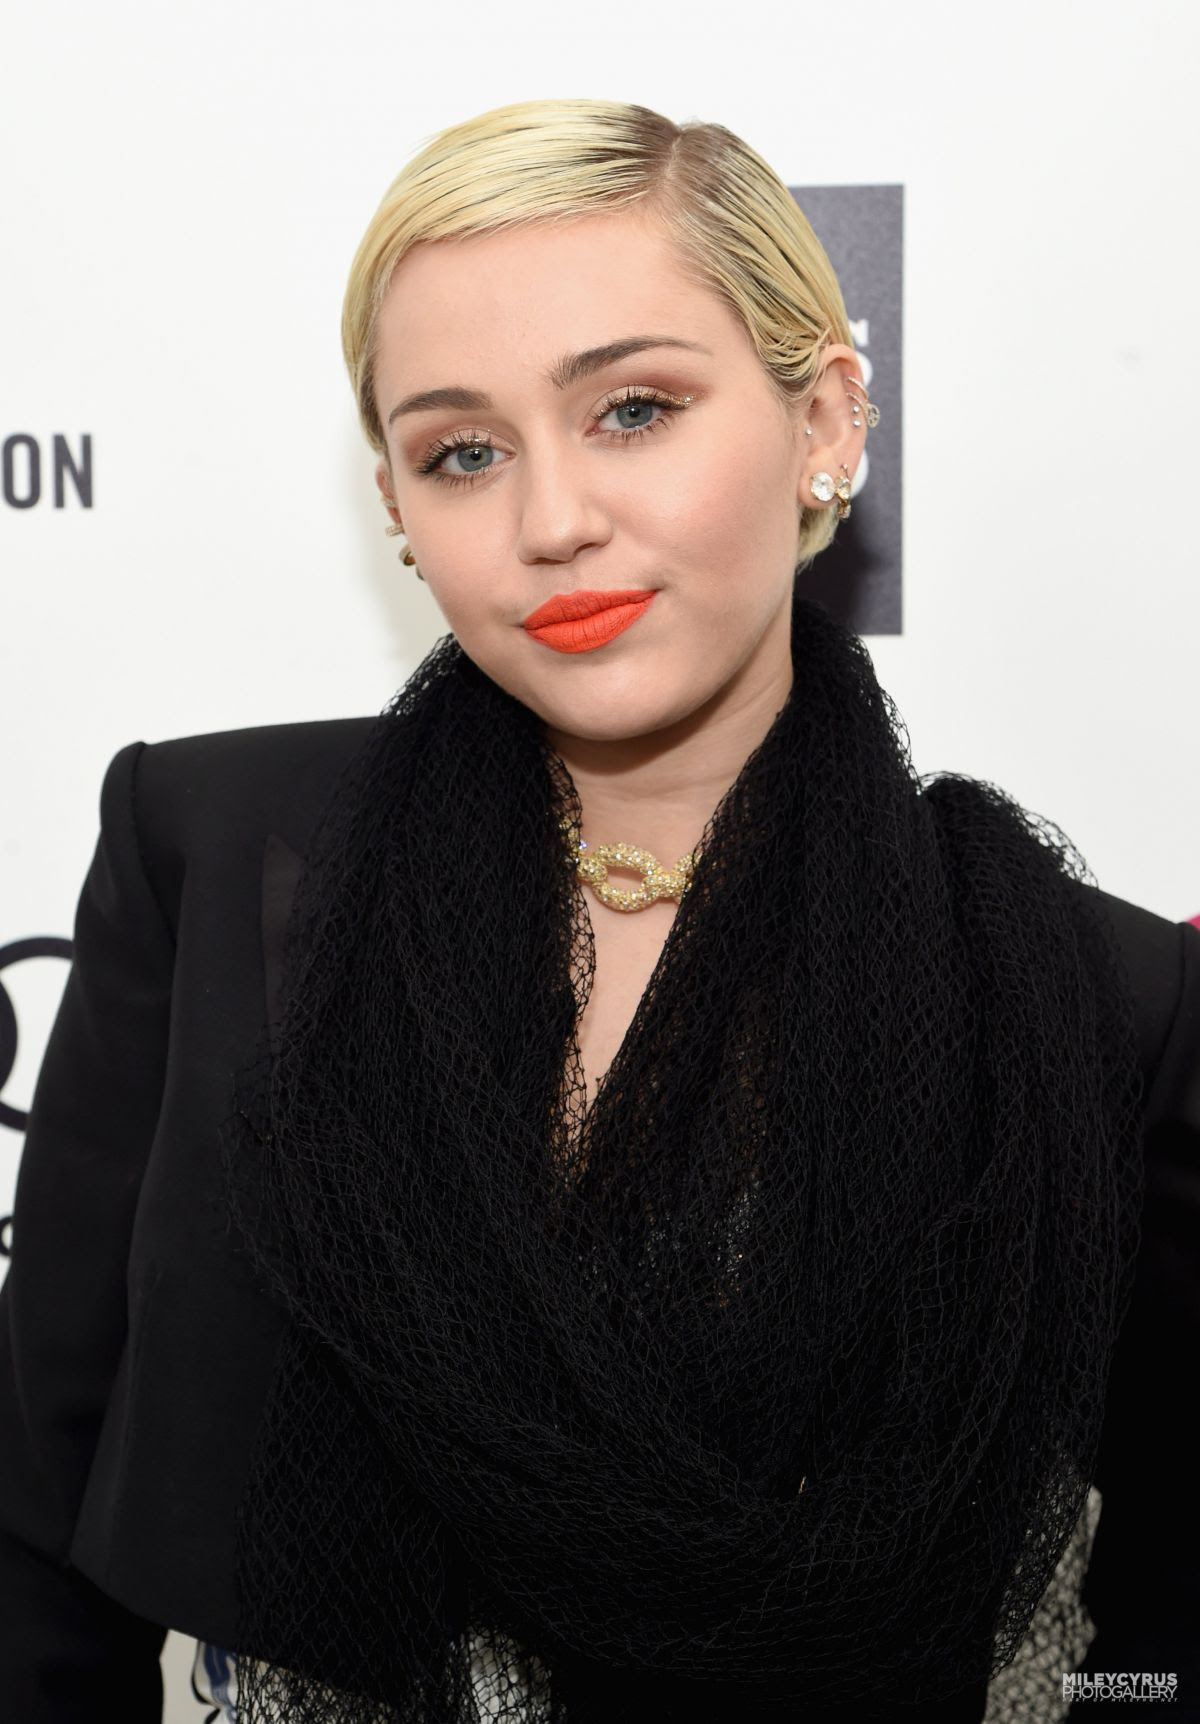 MILEY CYRUS at Elton John Aids Foundation's Oscar Viewing Party